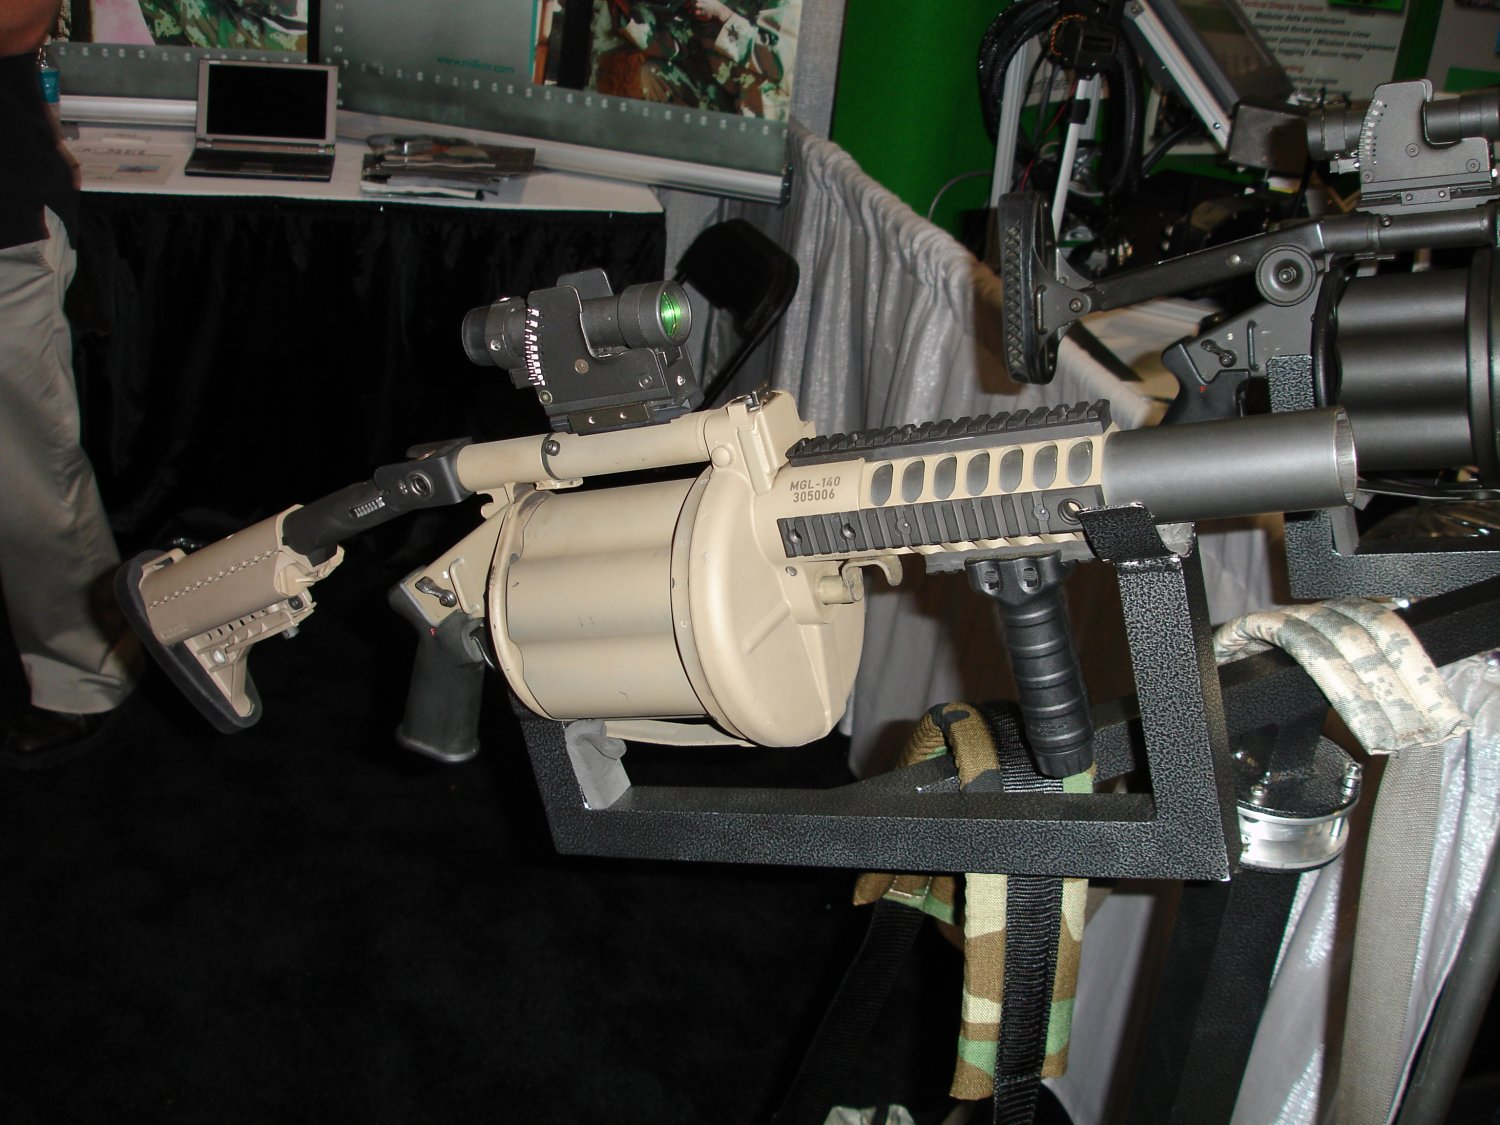 SOF%20Week Milkor%2040mm%20MGL 140 5 <!  :en  >New Milkor MGL 140/MEI Hyper Lethal 40mm Combo/Weapon System for Infantry<!  :  >